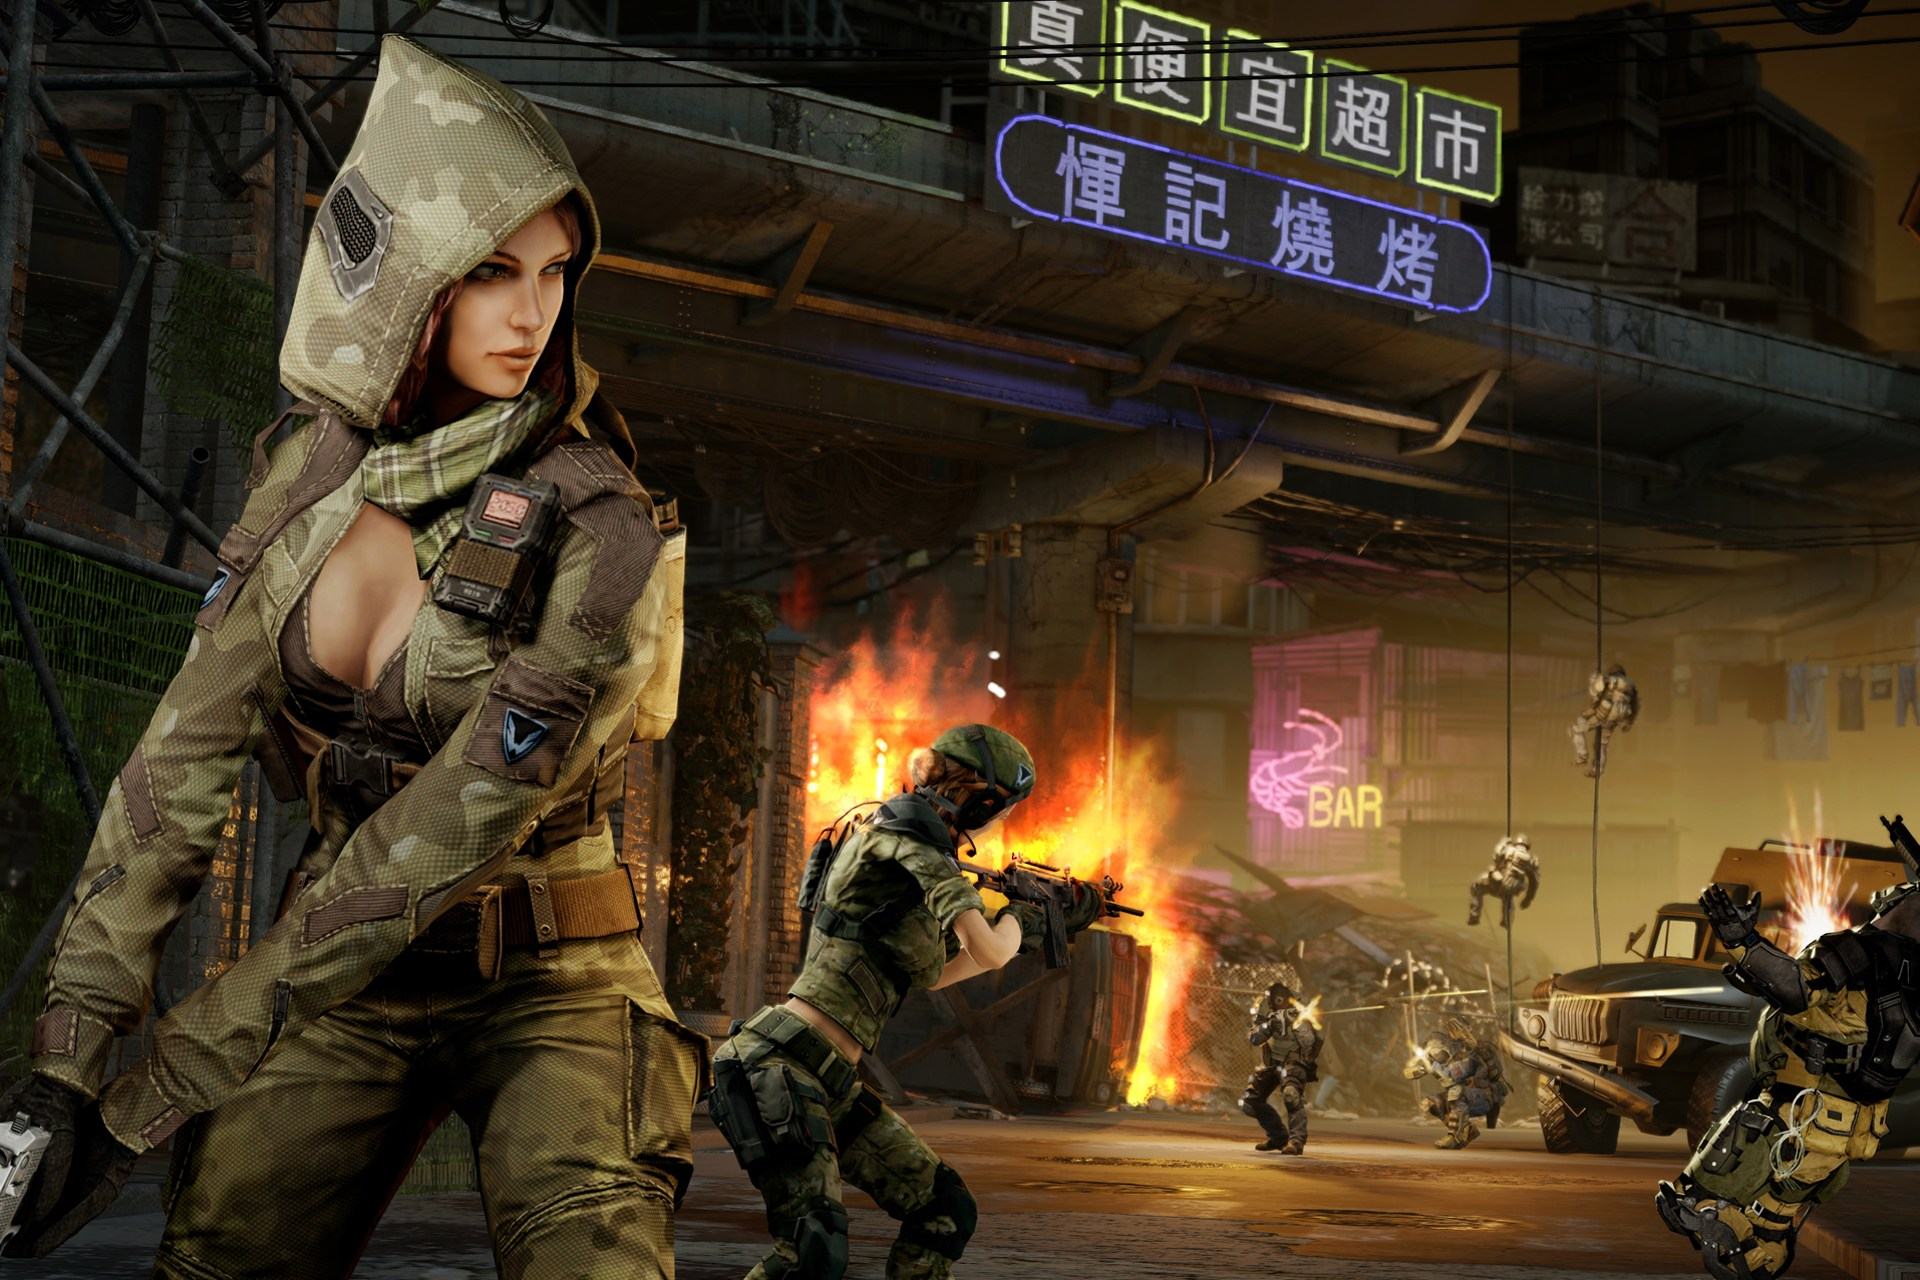 Warface Female Character Image - Females In Uniform -6805